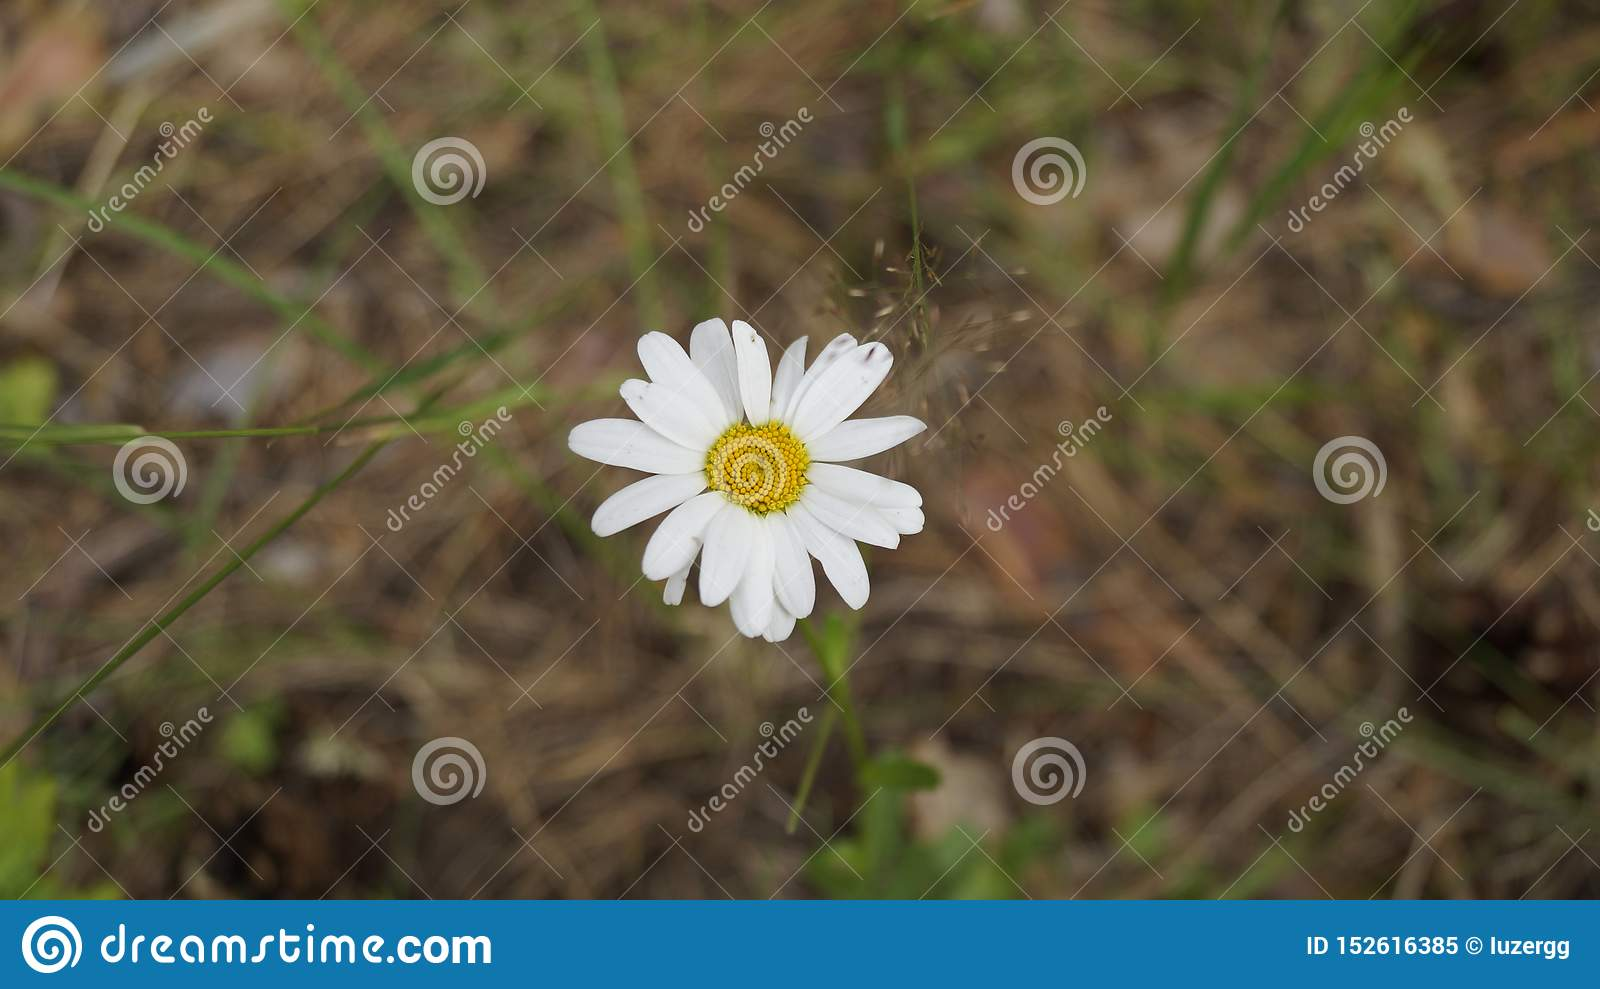 Daisy flower in the forest